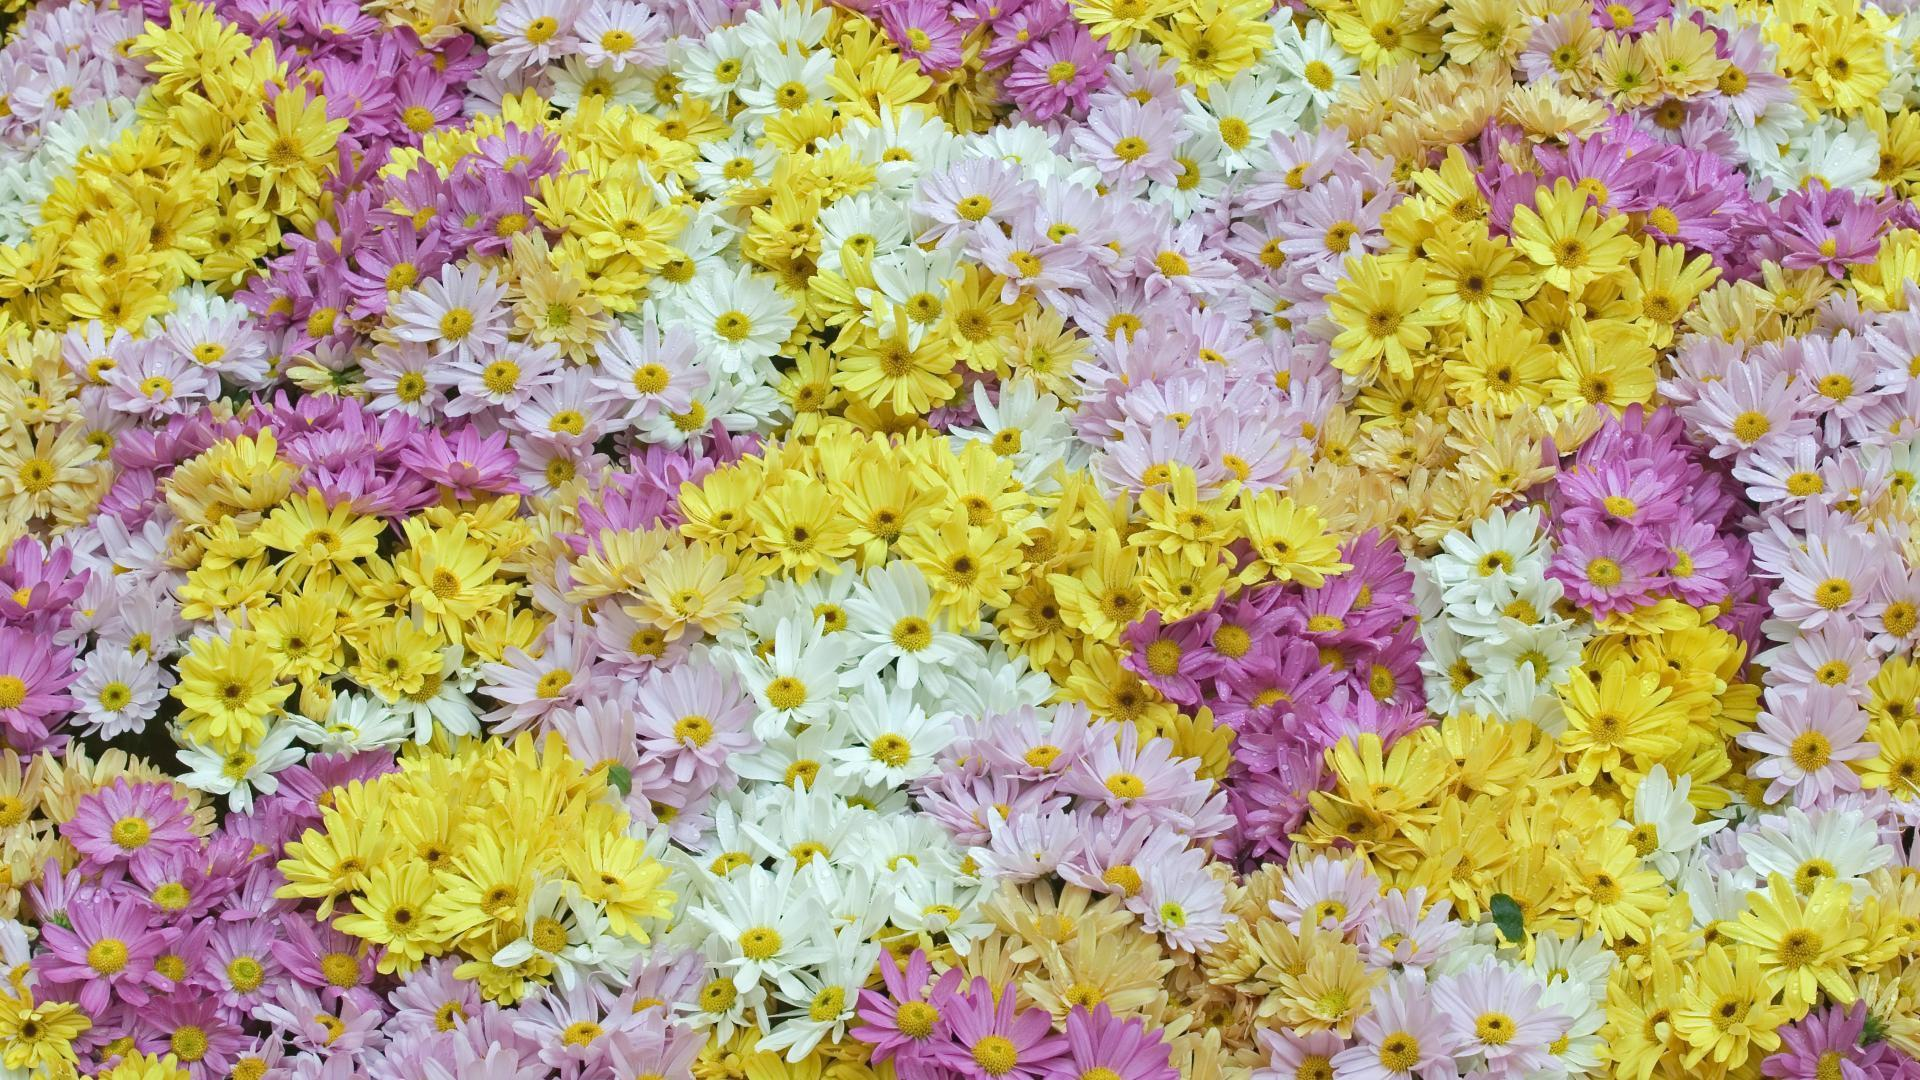 chrysanthemes_categorie-fleurs_fonds-ecran_telecharger_01